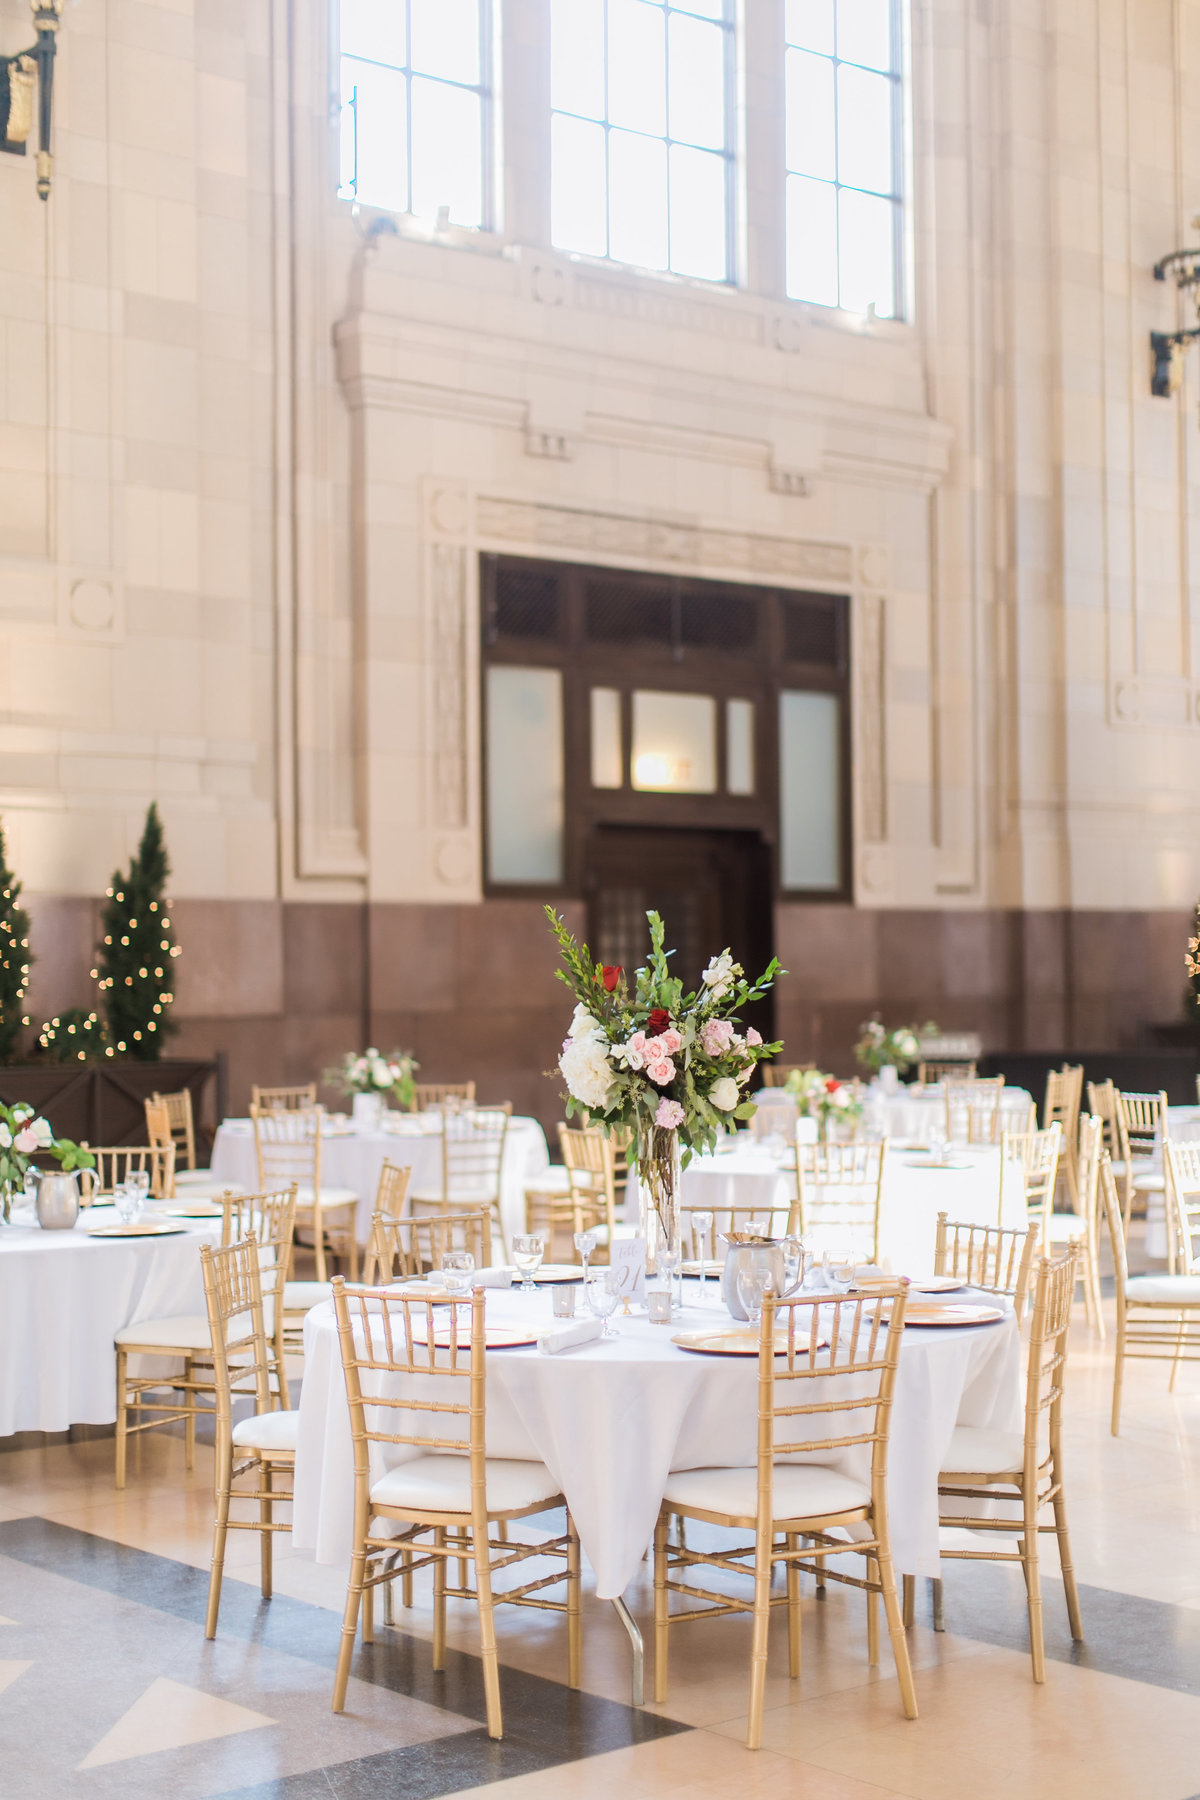 UnionStationKansasCityWedding_AshleyMatt_CatherineRhodesPhotography-22